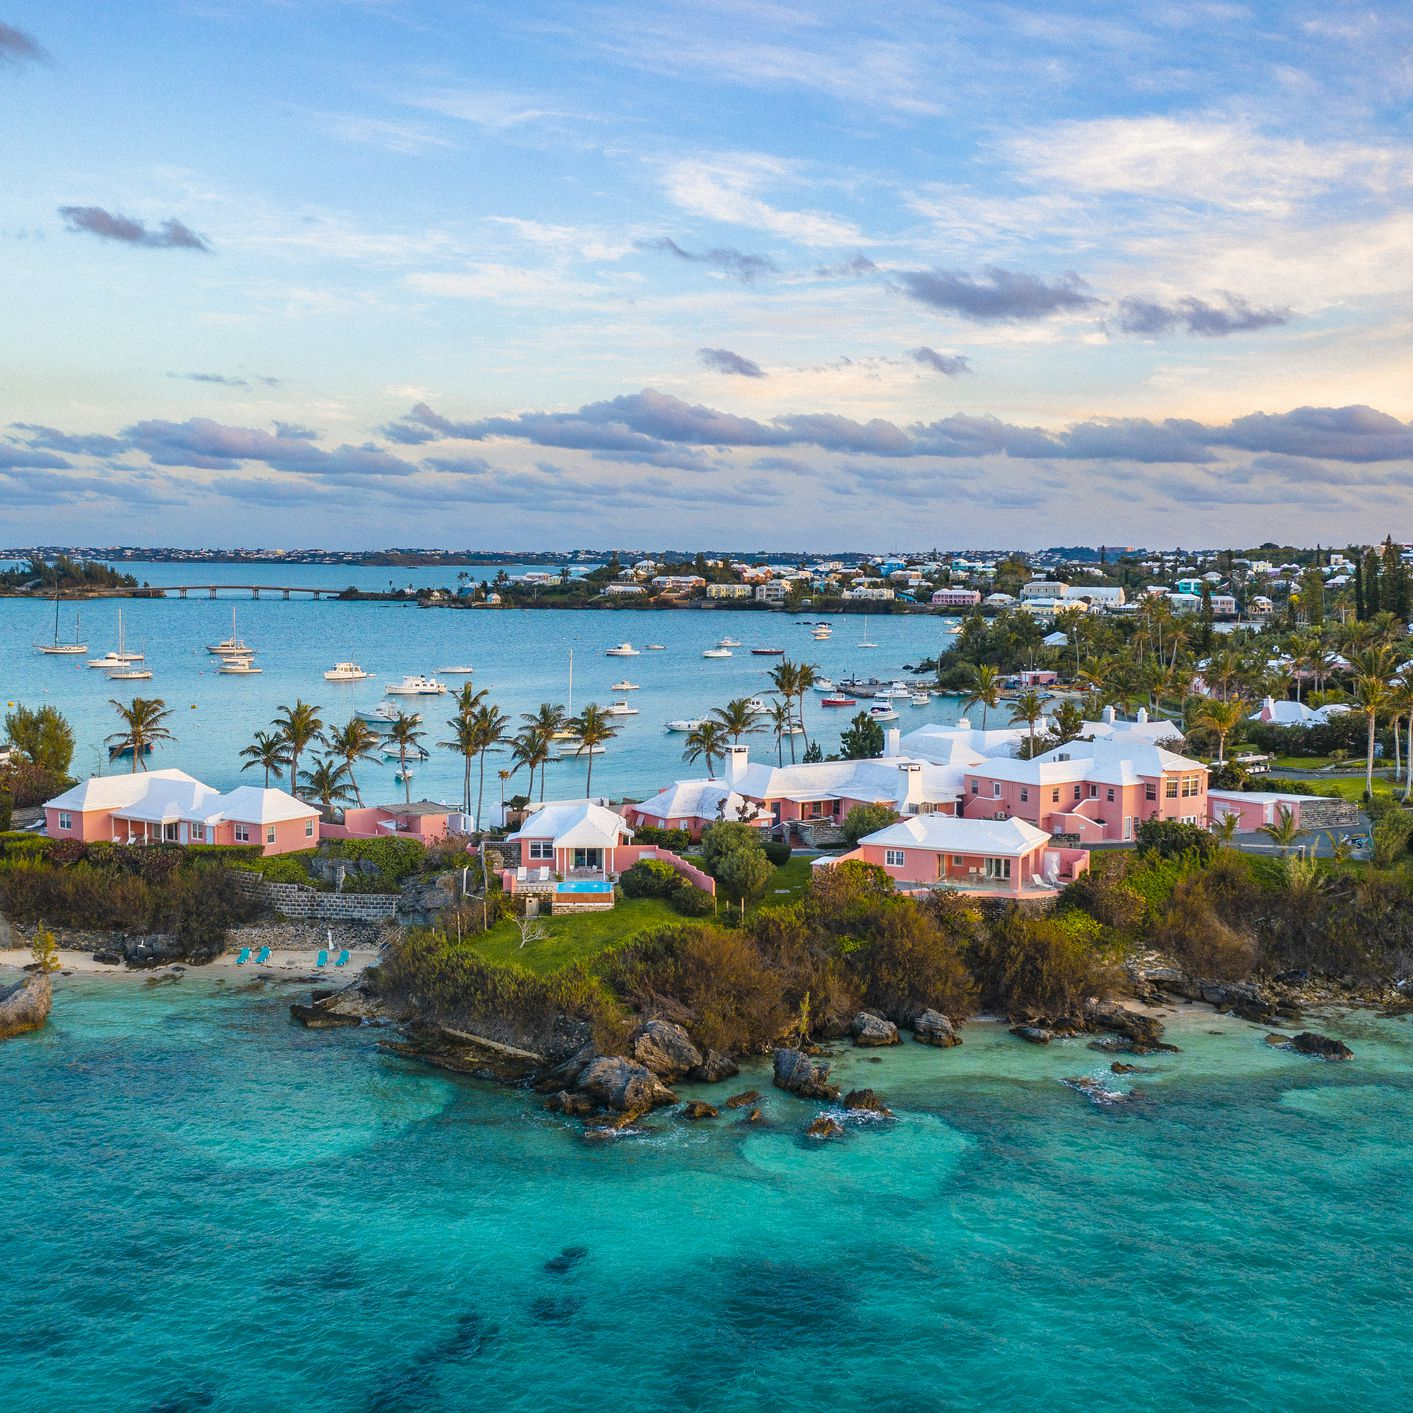 a-tropical-island-with-yachts-and-houses